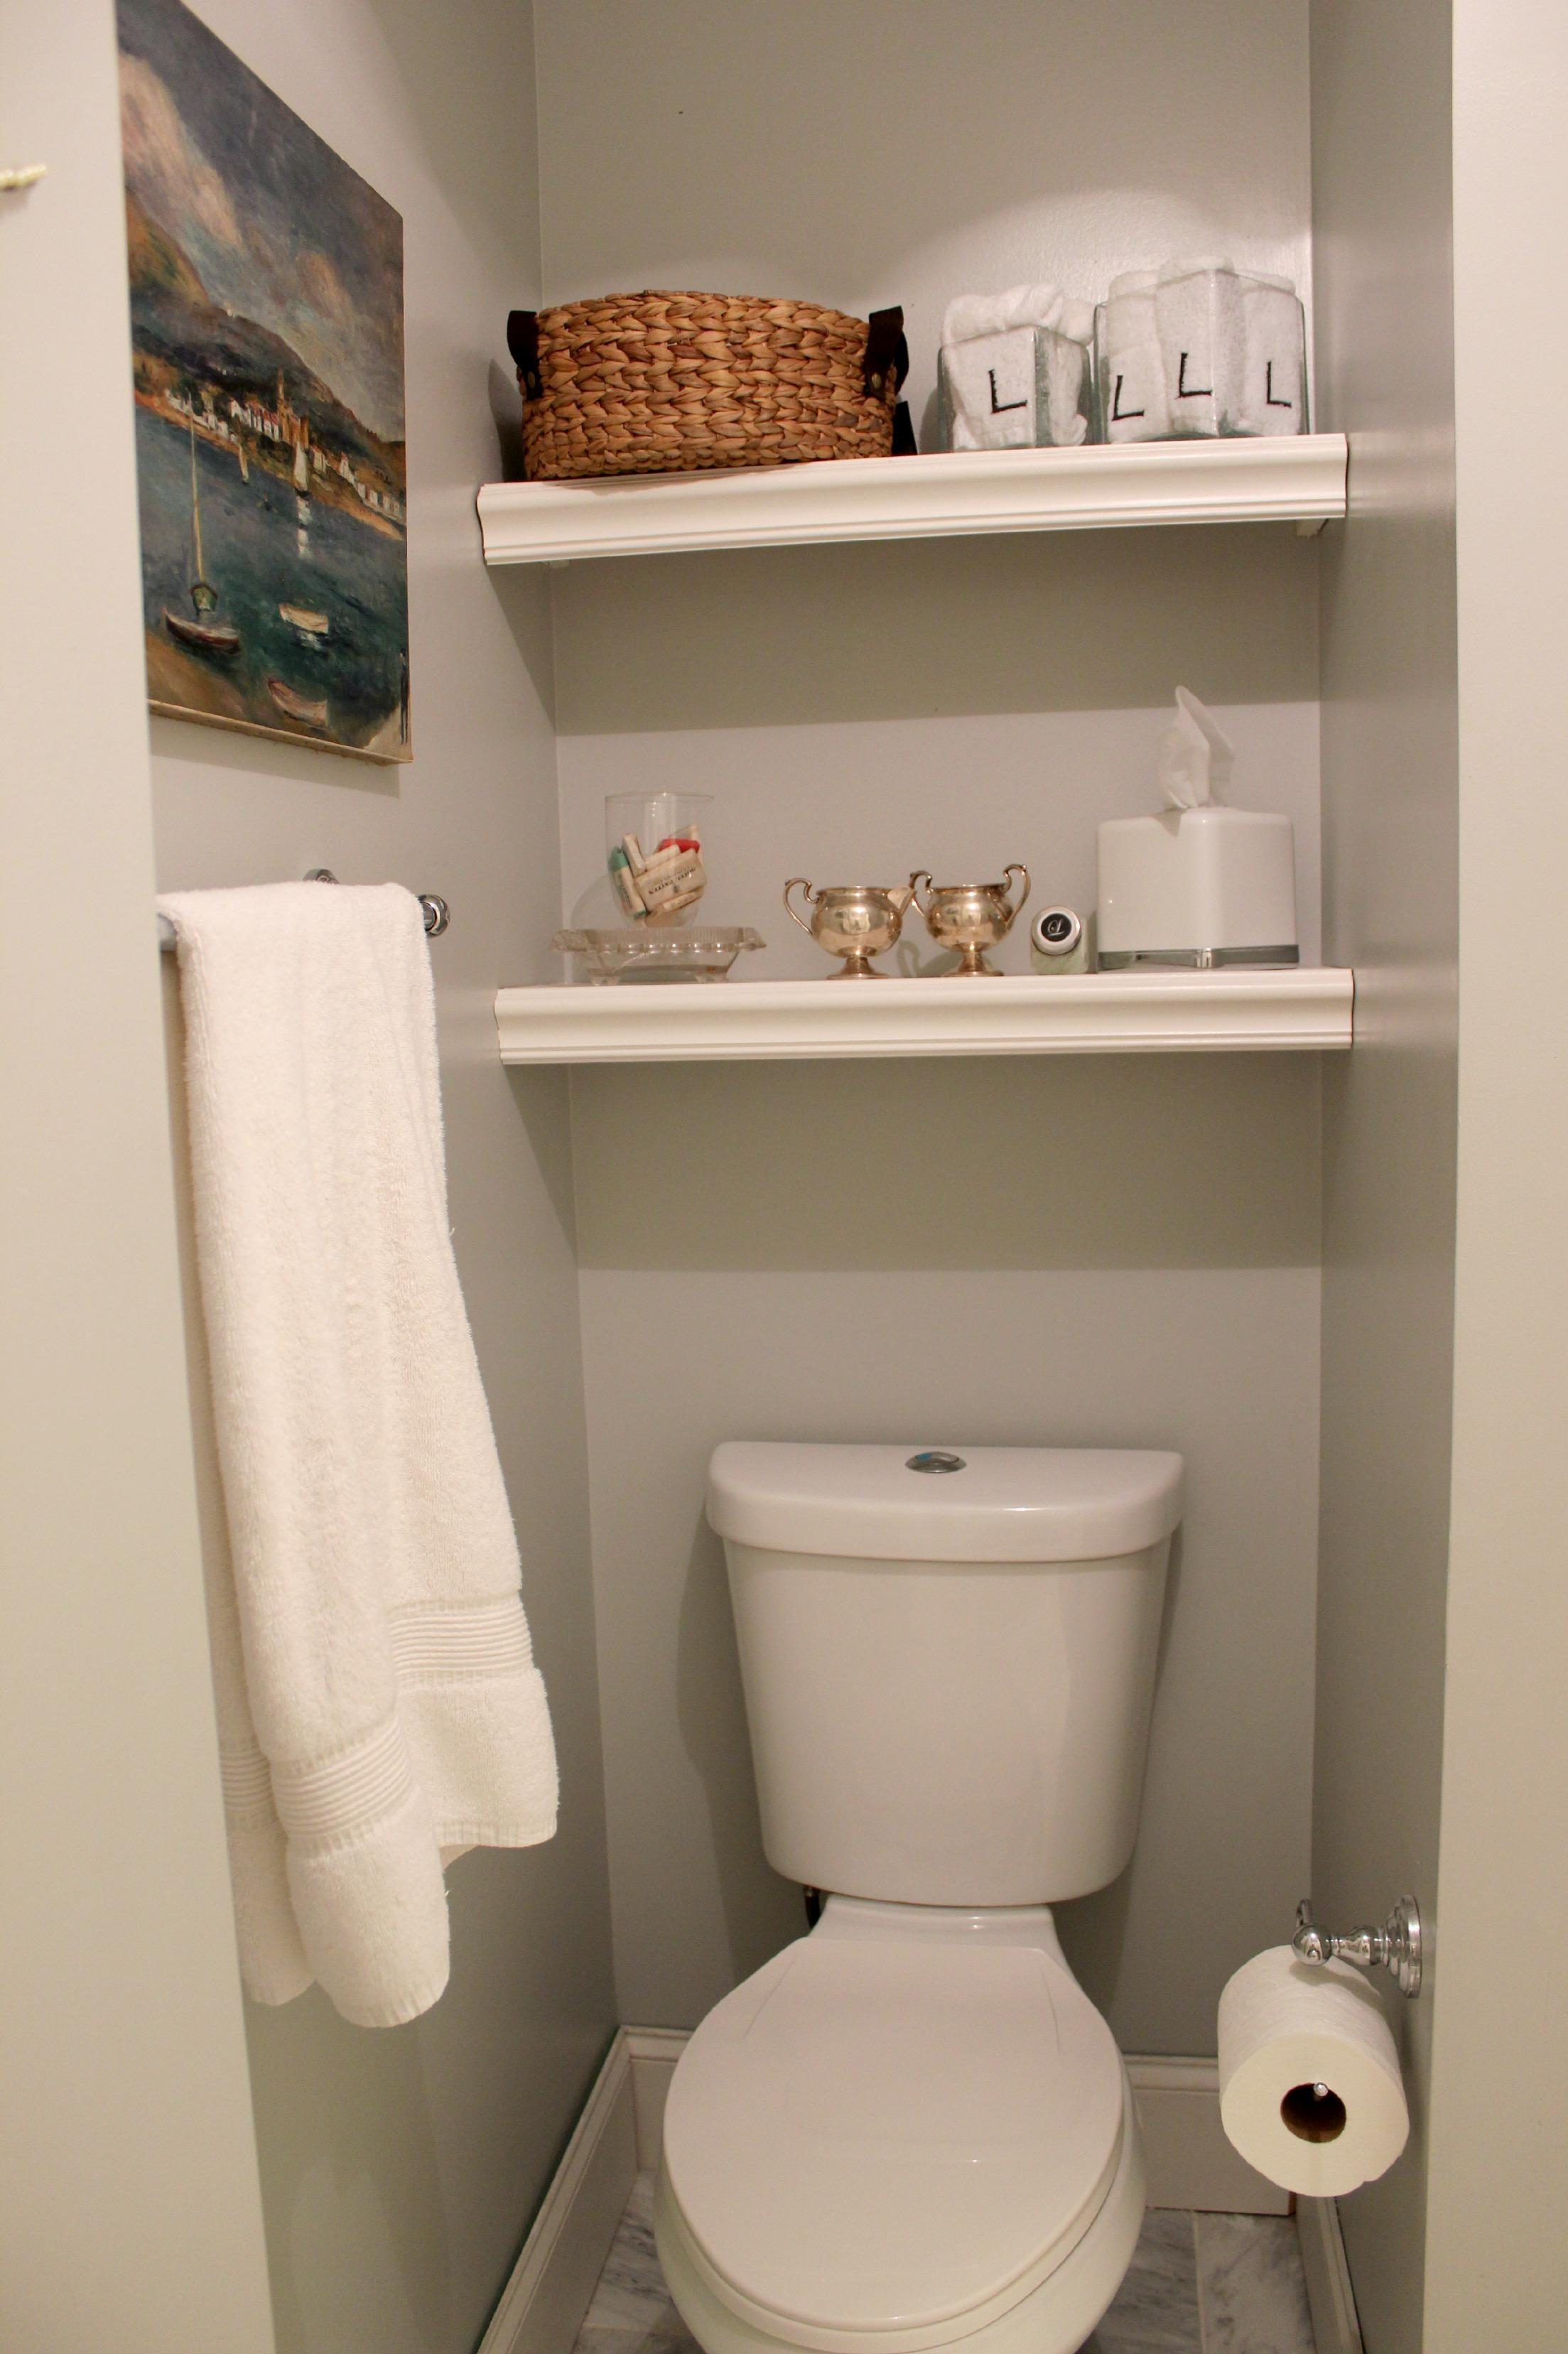 bathroom towel small toilet shelf pic tissue - Bathroom Decorating Ideas For Small Spaces